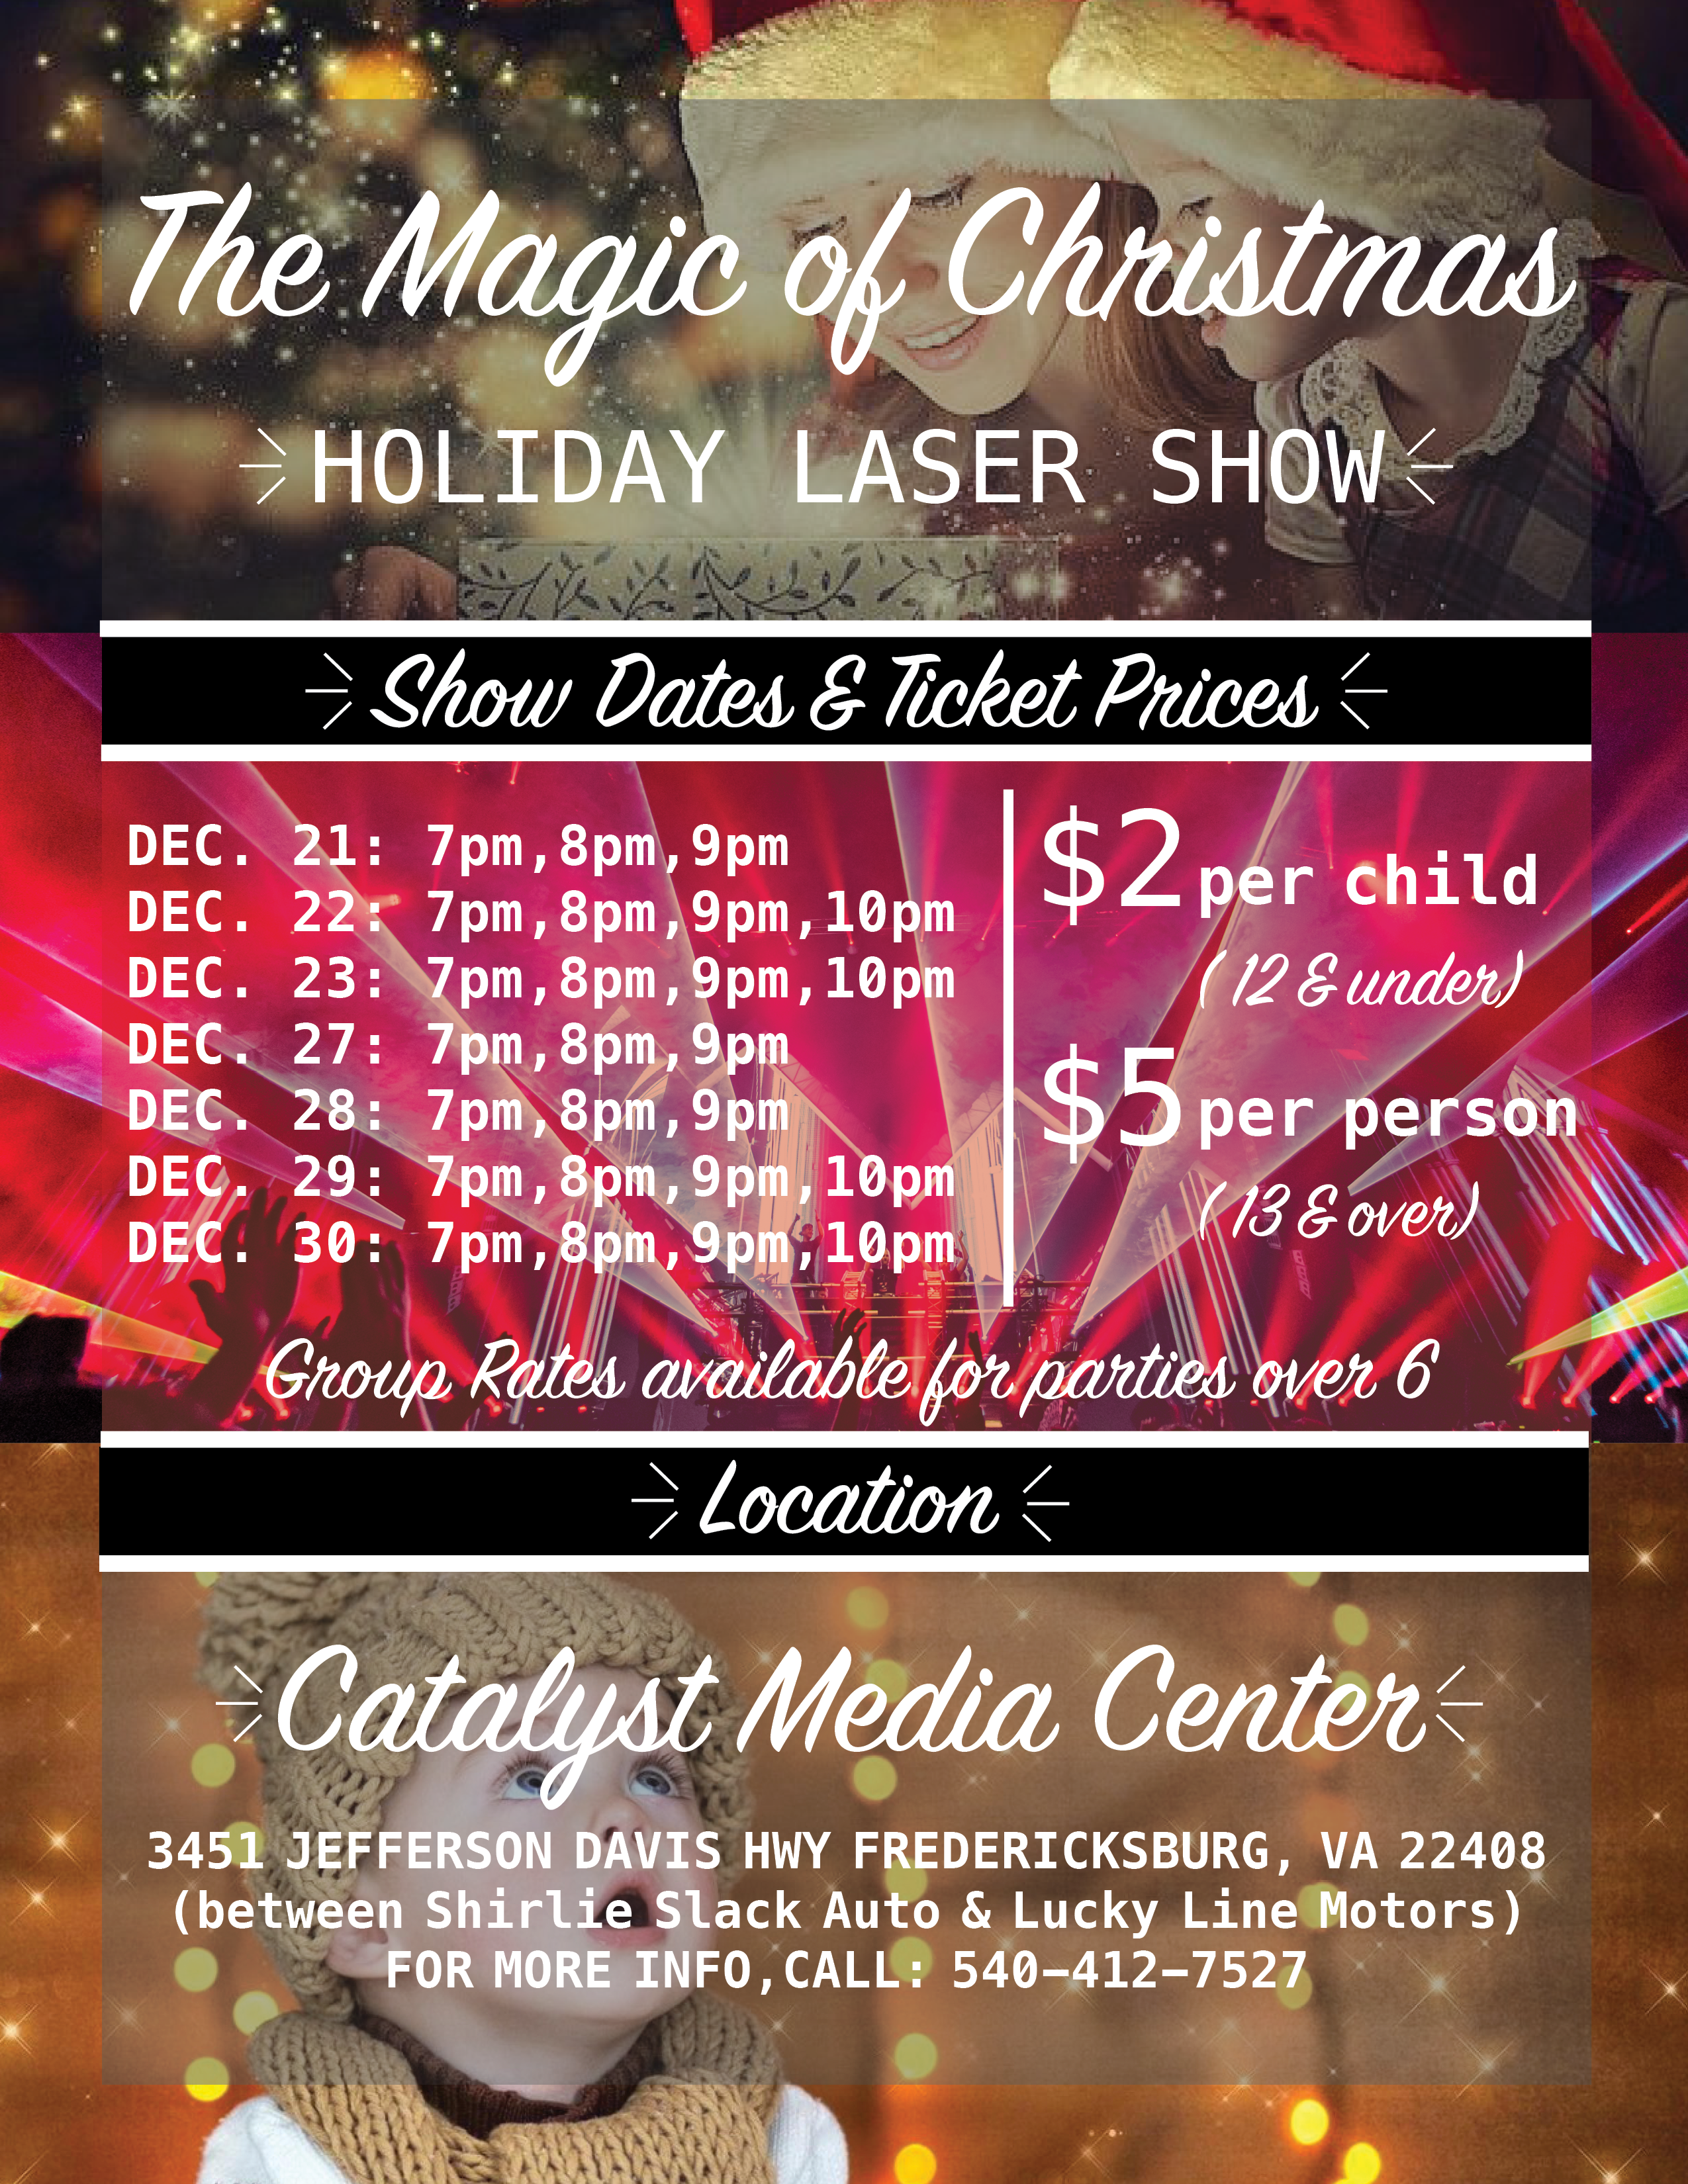 The Magic of Christmas Laser Show